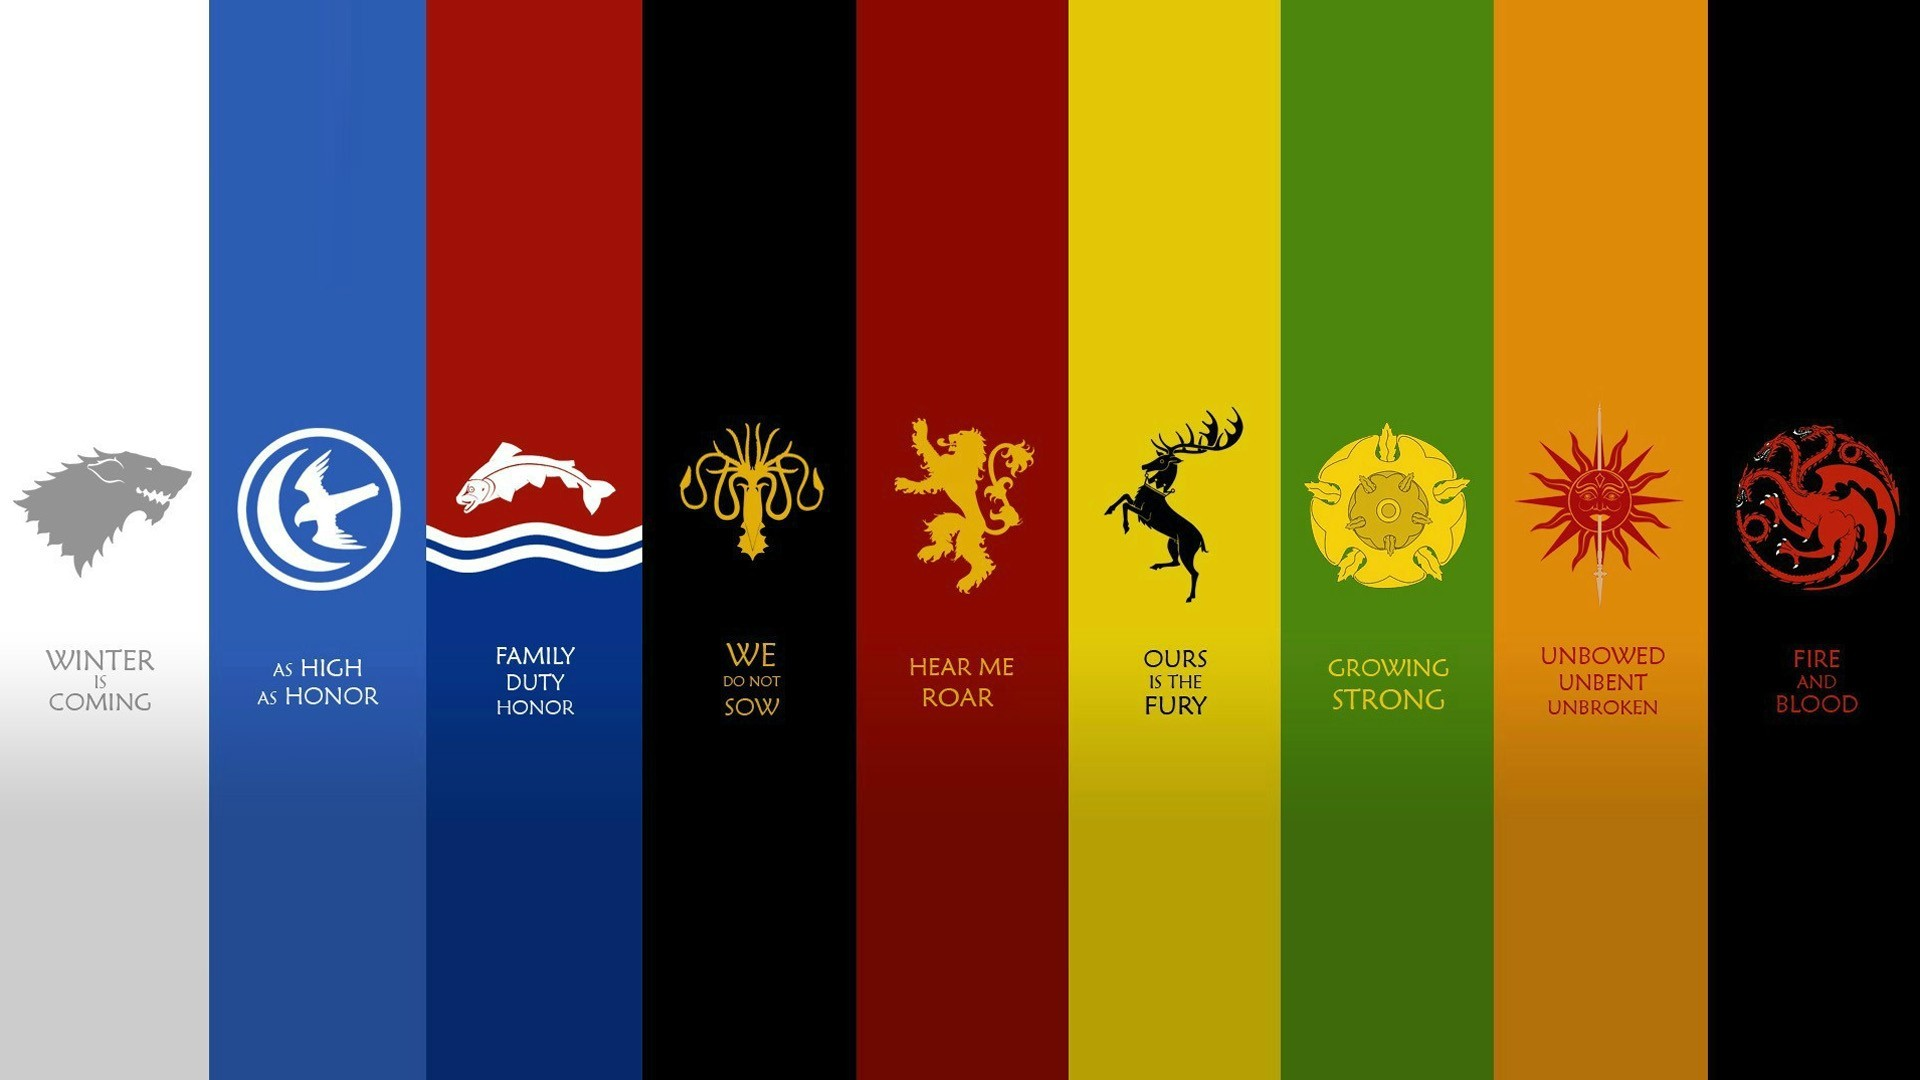 1920x1080 quotes houses fantasy art Game of Thrones emblems A Song of Ice and Fire  George R_